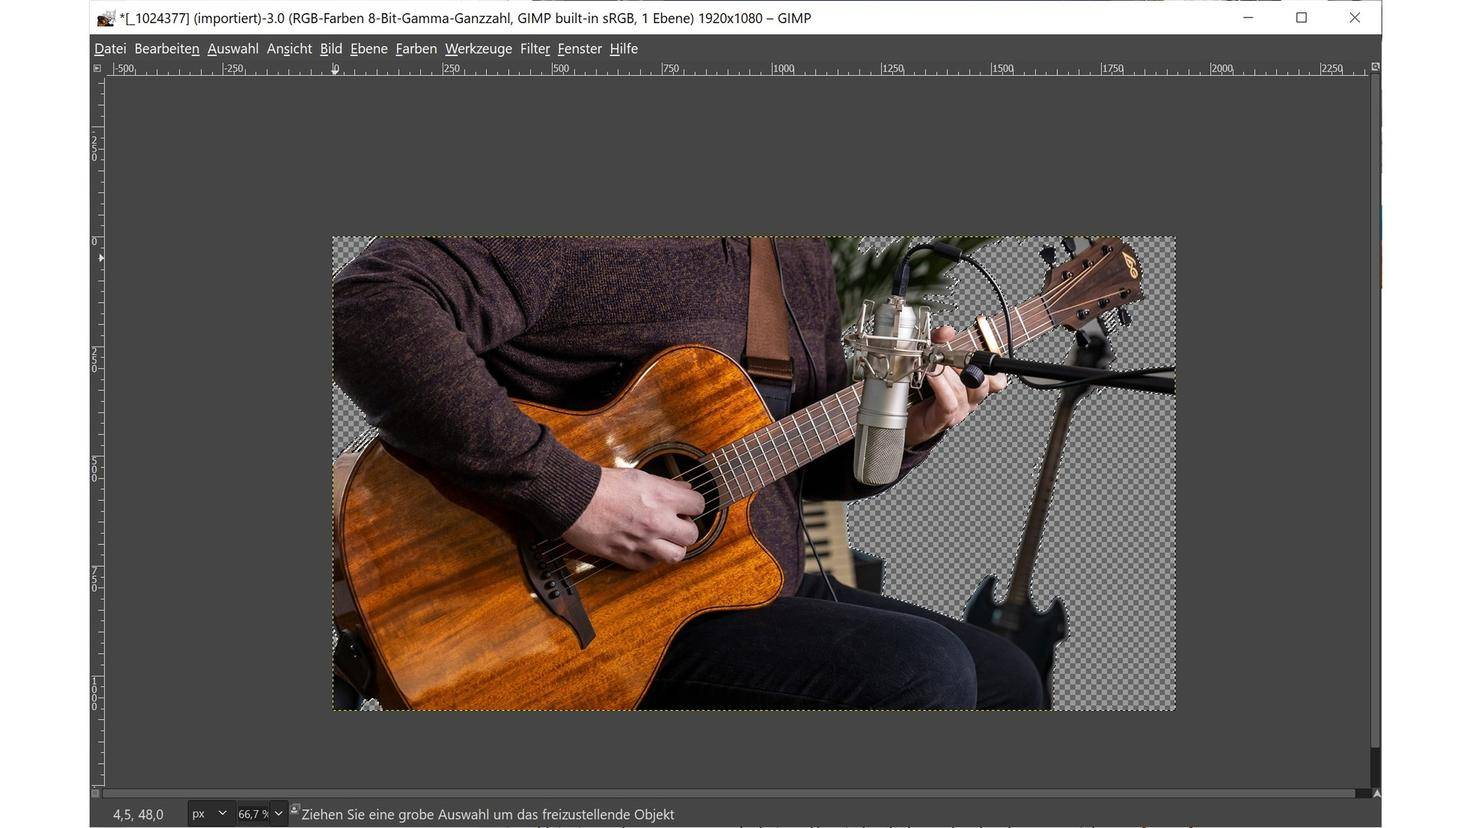 gimp-image-background-clipping